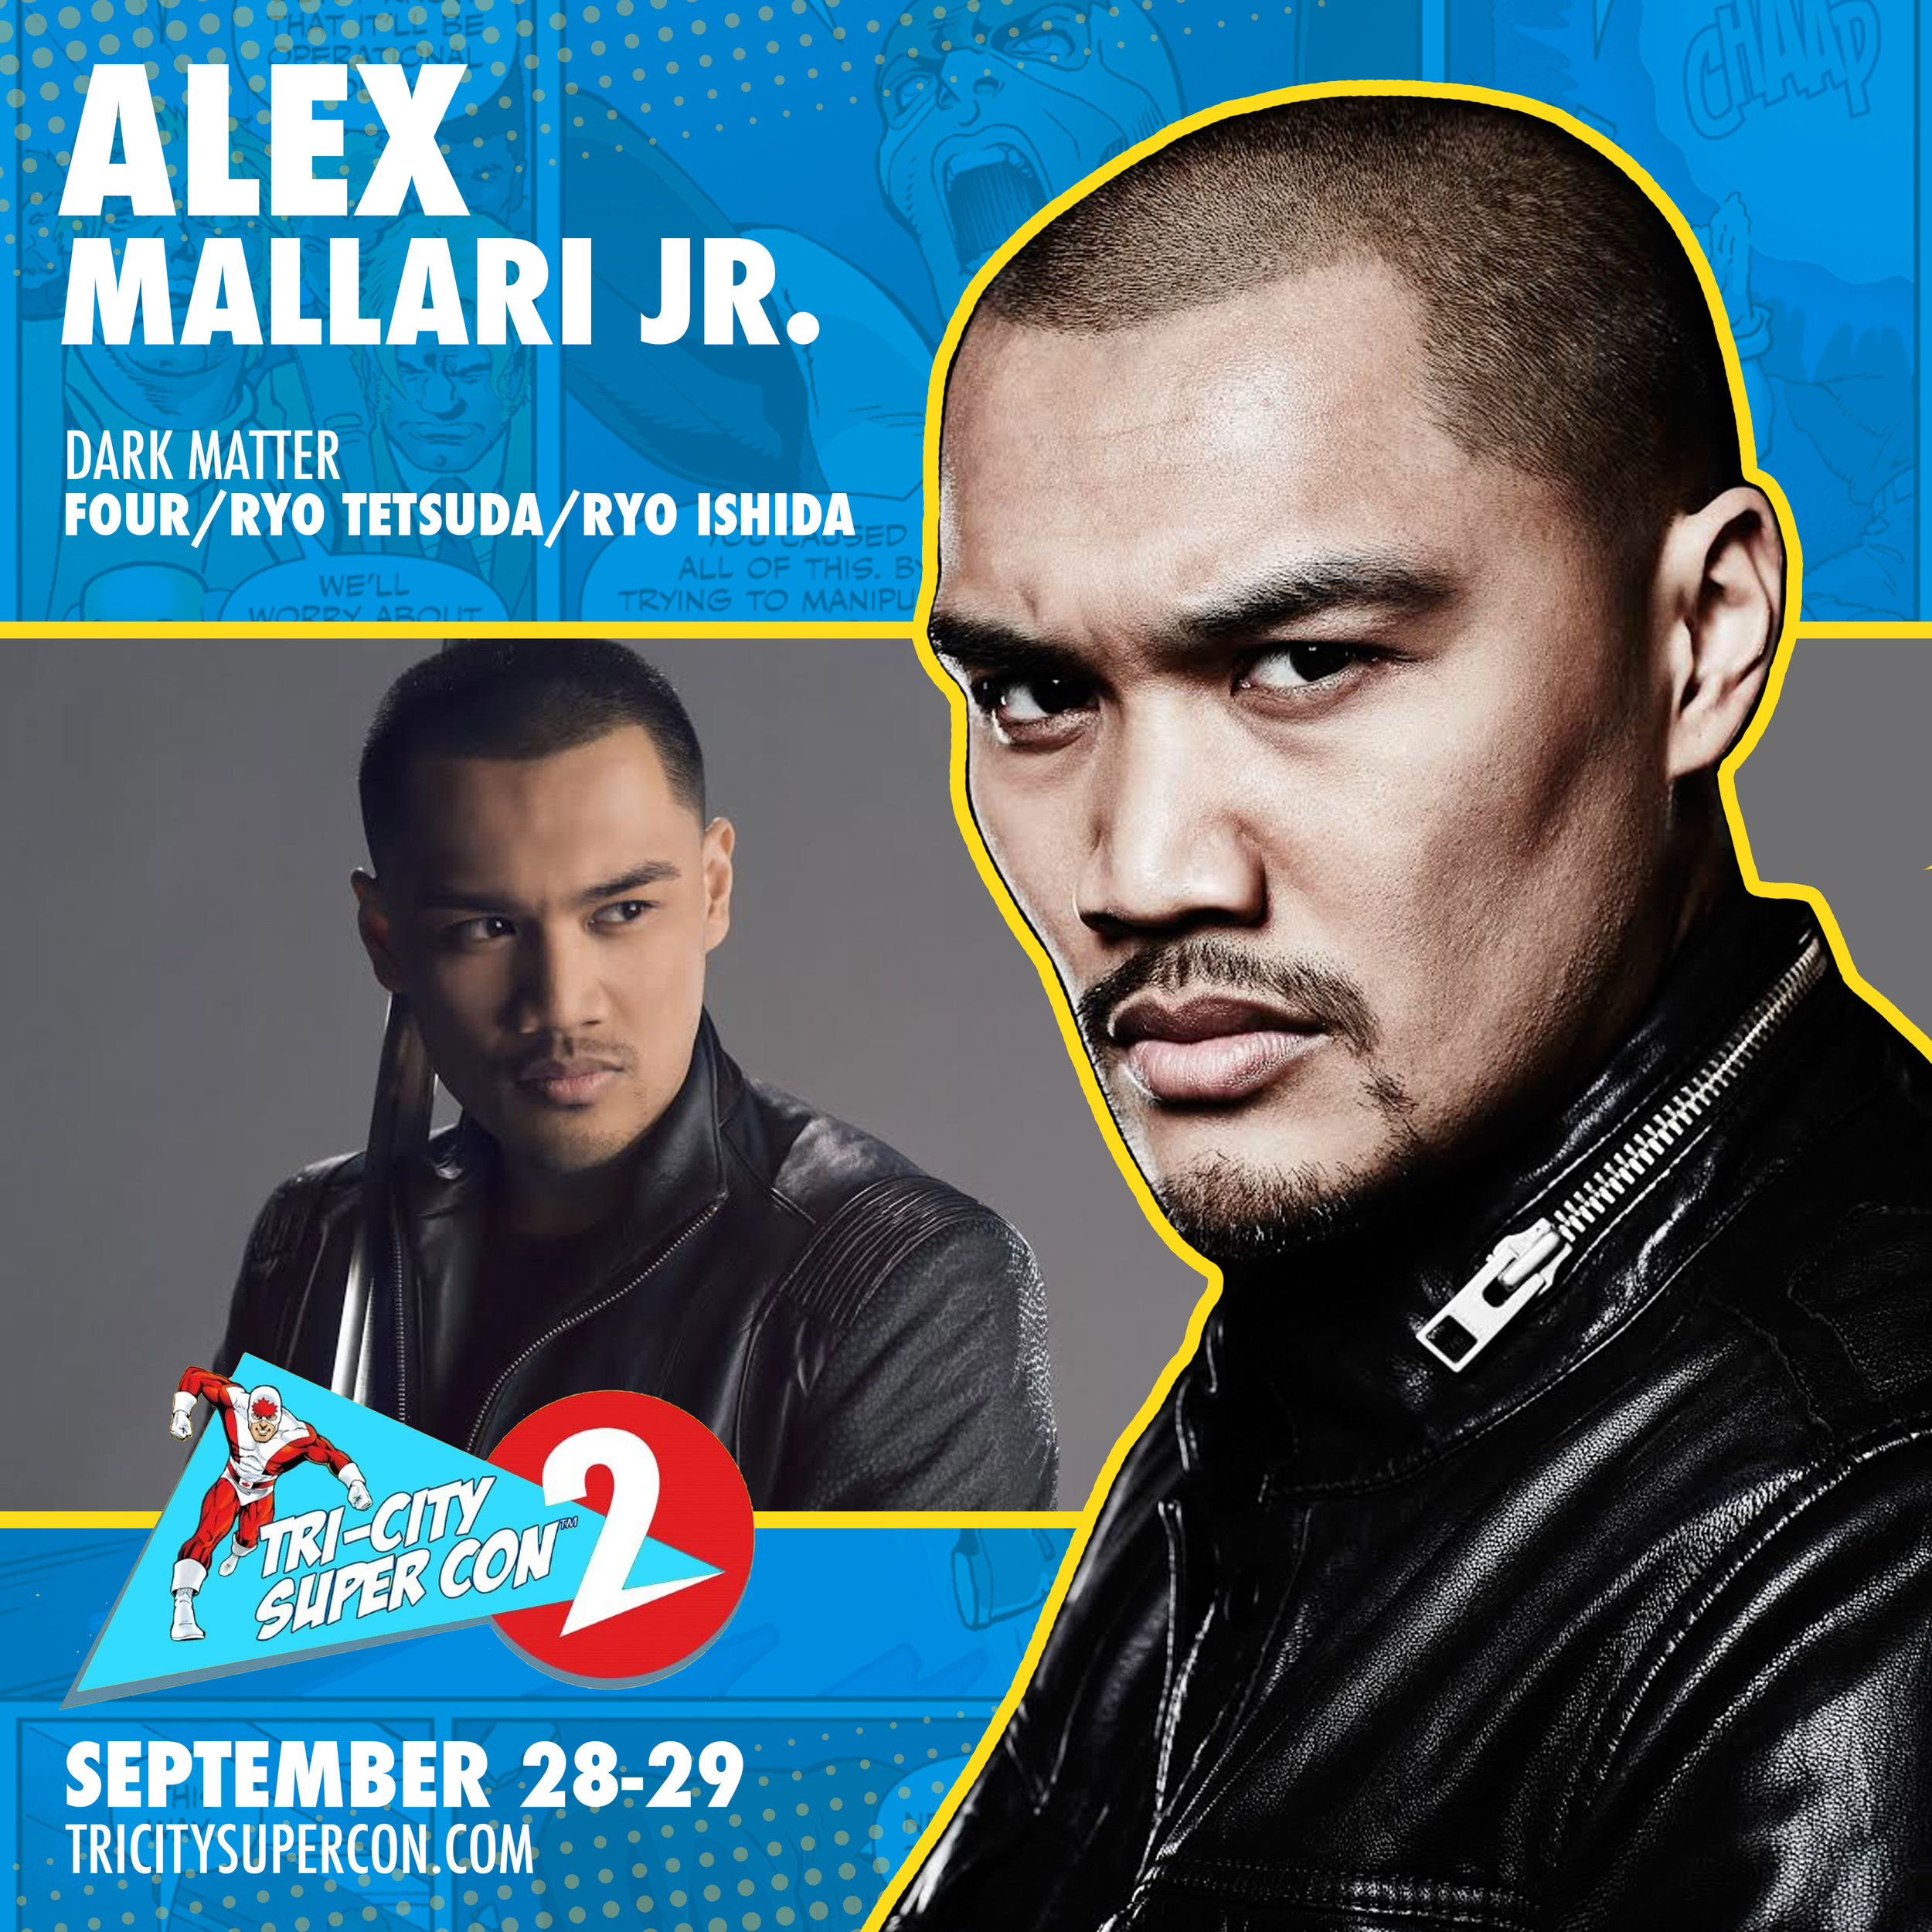 "Allex Mallari Jr.   was born in the Philippines and raised in Scarborough, Having had national success in both Tae Kwon Do and competitive basketball, it was evident that his determination would always carry him to great heights no matter what journey he decided to embark on. When his basketball career came to a halt in his last year of high school due to an injury, he attended the Criminology program at the University of Toronto with the goal to become an attorney. It was during his time in university he decided to take on his childhood dream: to become an ""action star."" With no knowledge of the entertainment industry and no guidance, Alex dove in head first. Since then he has worked on ""Robocop"", ""The Strain"", ""Nikita"", ""Beauty & The Beast"", and many other prime-time television shows. Now, he has the task of bringing the character ""Four"", a strong and stoic warrior, on SyFy's upcoming hit series ""Dark Matter"" to life."